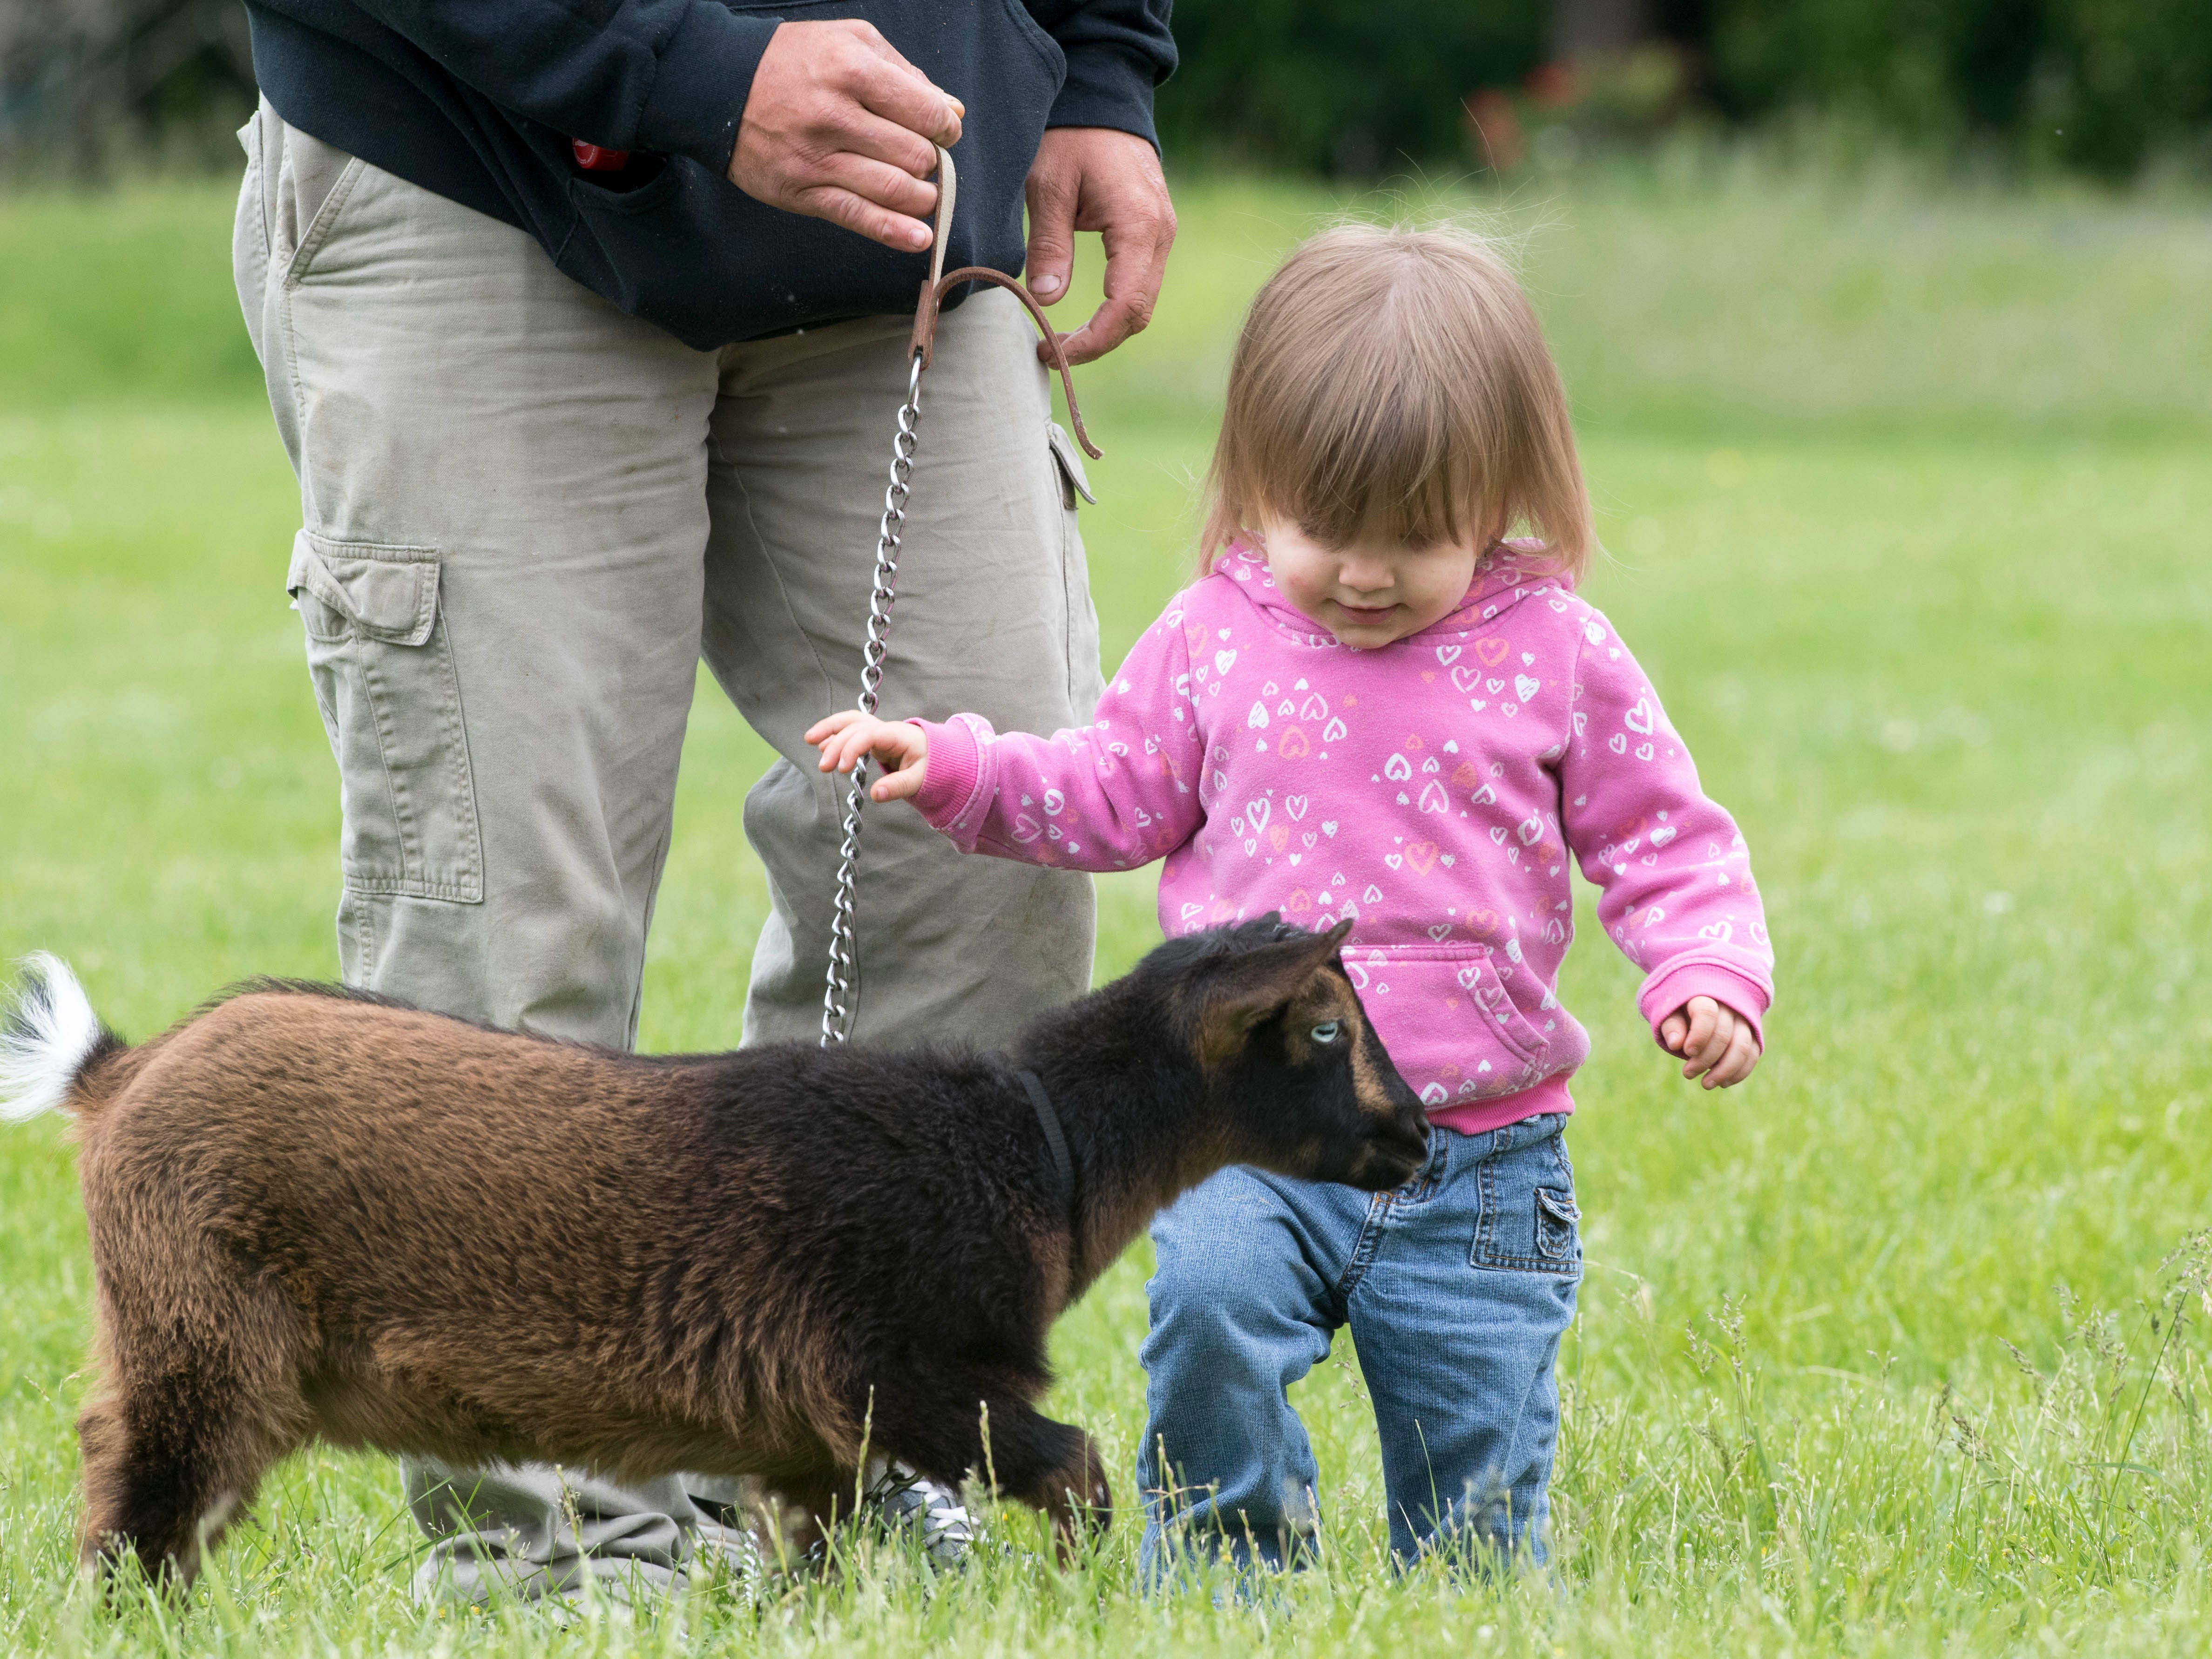 Rylie Glaser, 22 months, runs to pet the Nigerian Dwarf goat, Hershey, during the 2019 Spirit Fest Saturday, May 11, 2019. Spirit Fest is a day of fun and activities that benefits the Spirit Medical Fund which raises money for the Evansville Animal Care and Control shelter.